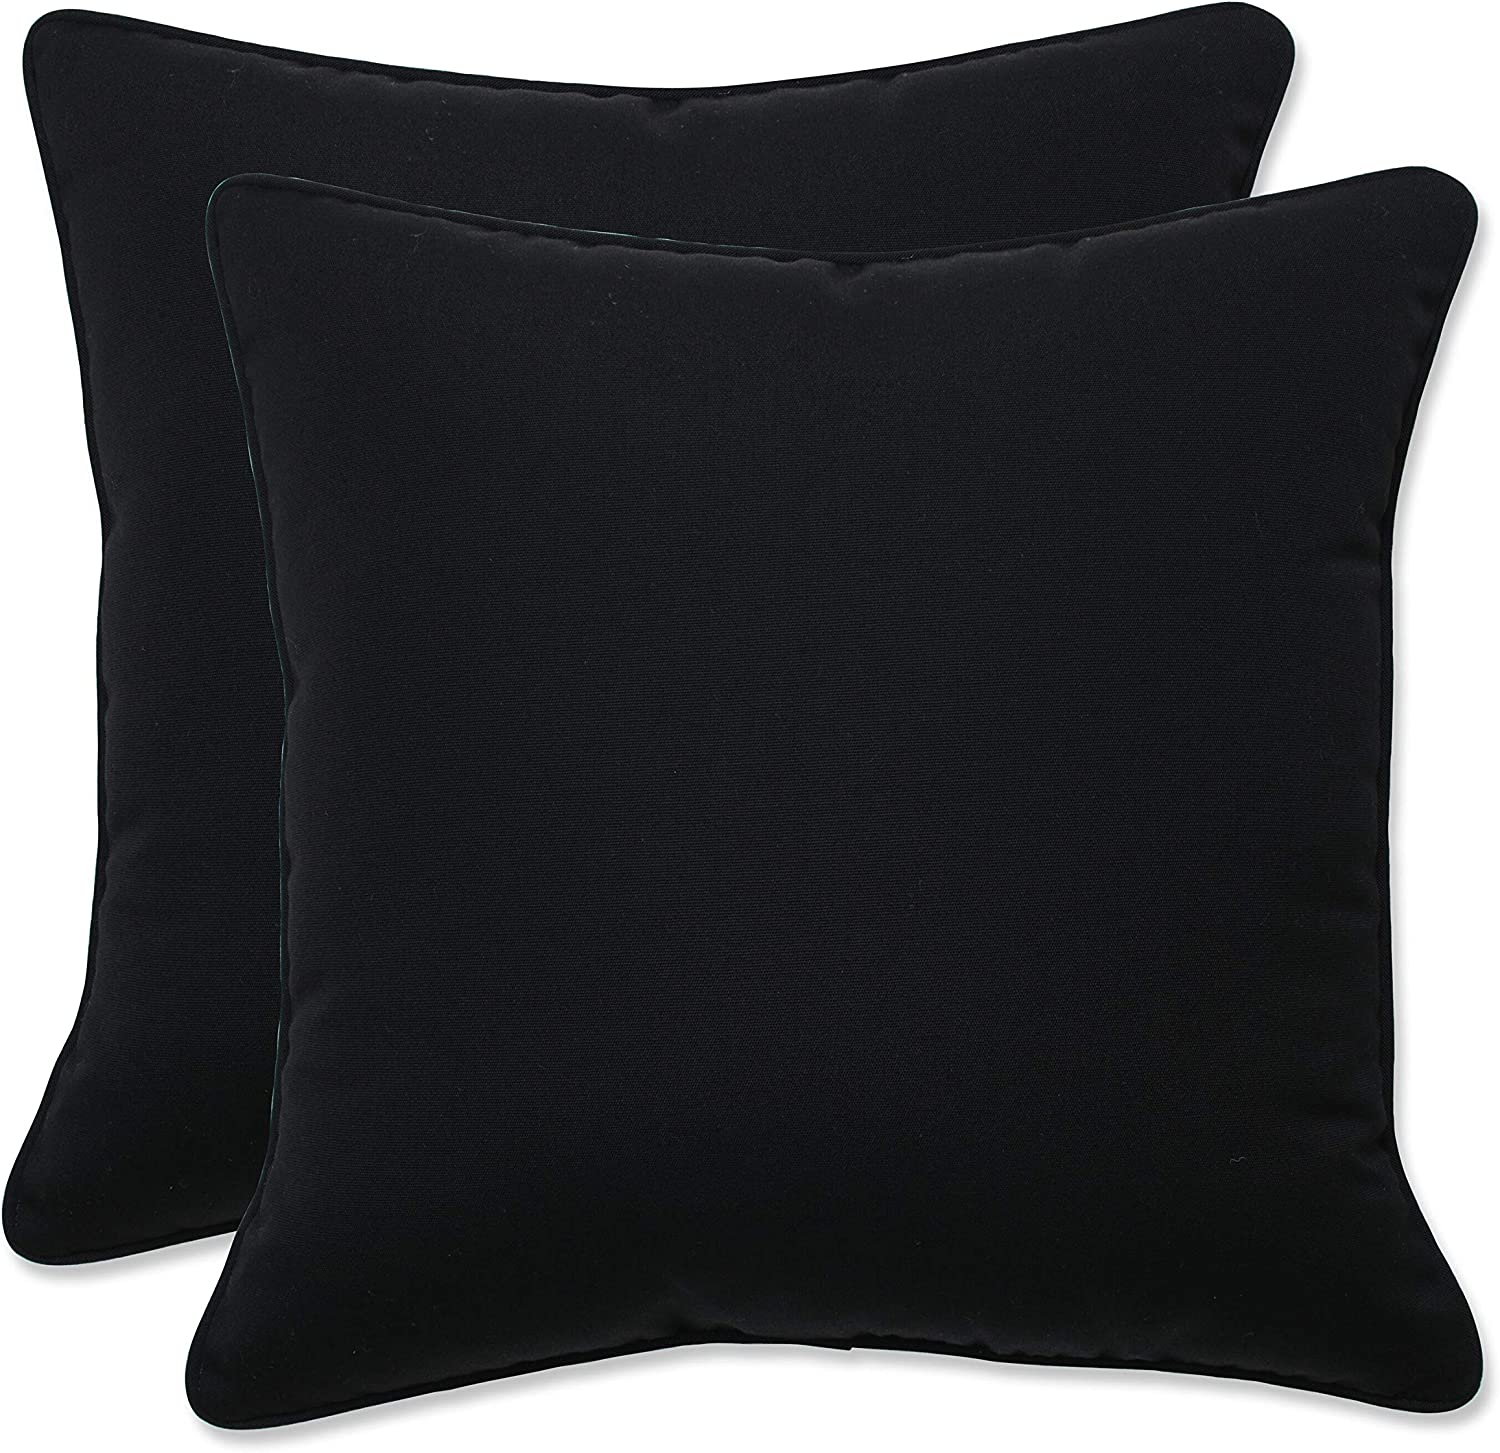 Pillow Perfect Outdoor Indoor Topics on TV Canvas Black Throw OFFer Inch 16.5 Pil